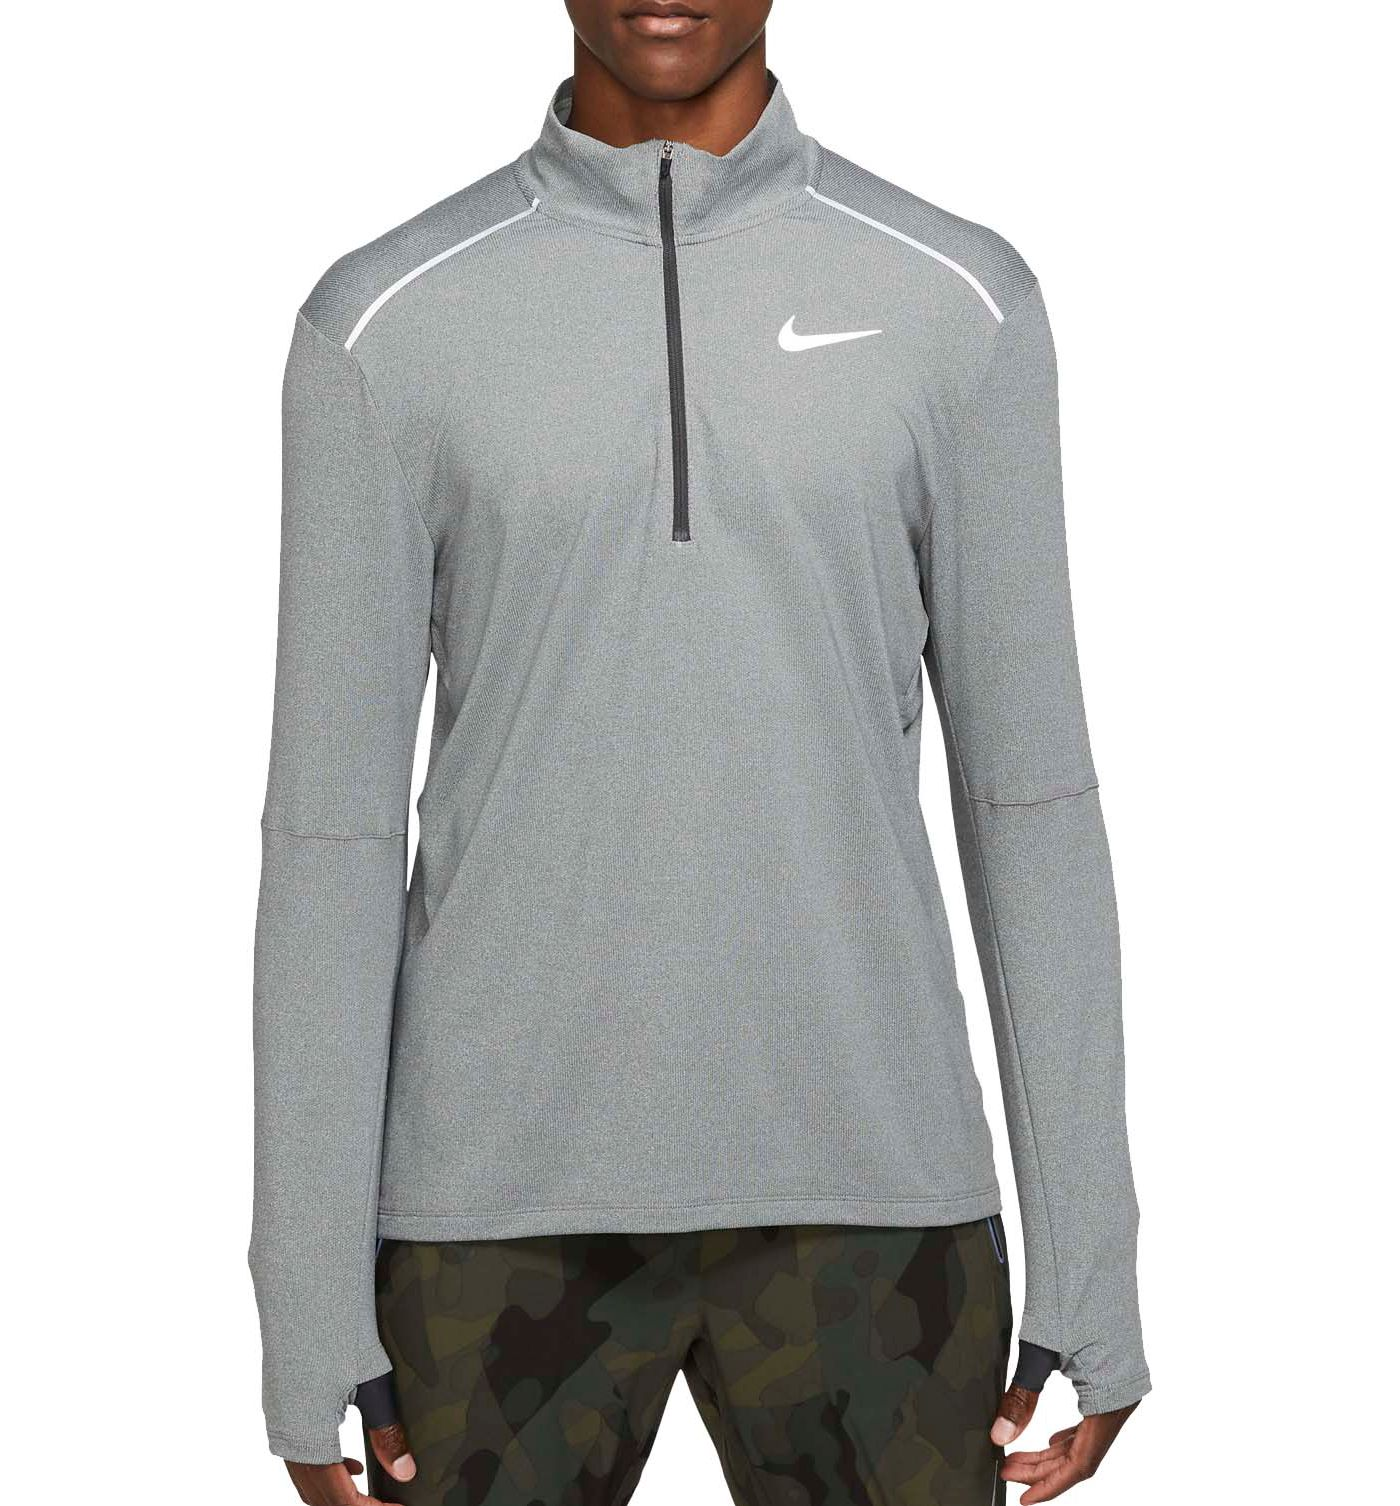 Nike Men's Element ½ Zip Mock Neck Running Long Sleeve Shirt 3.0